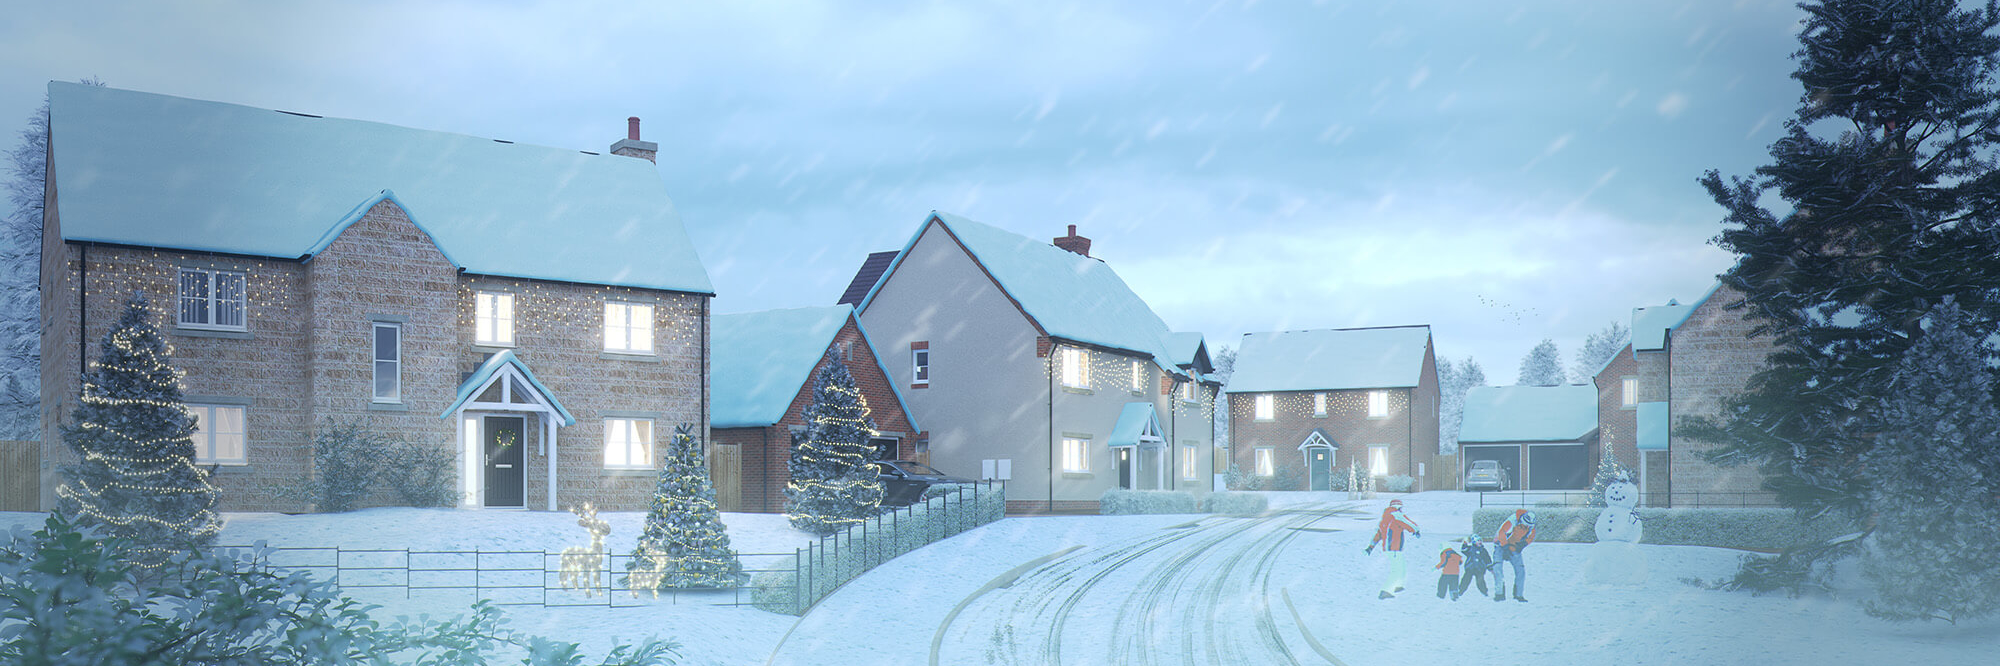 Cameron Homes - The Orchards Christmas Pano Image